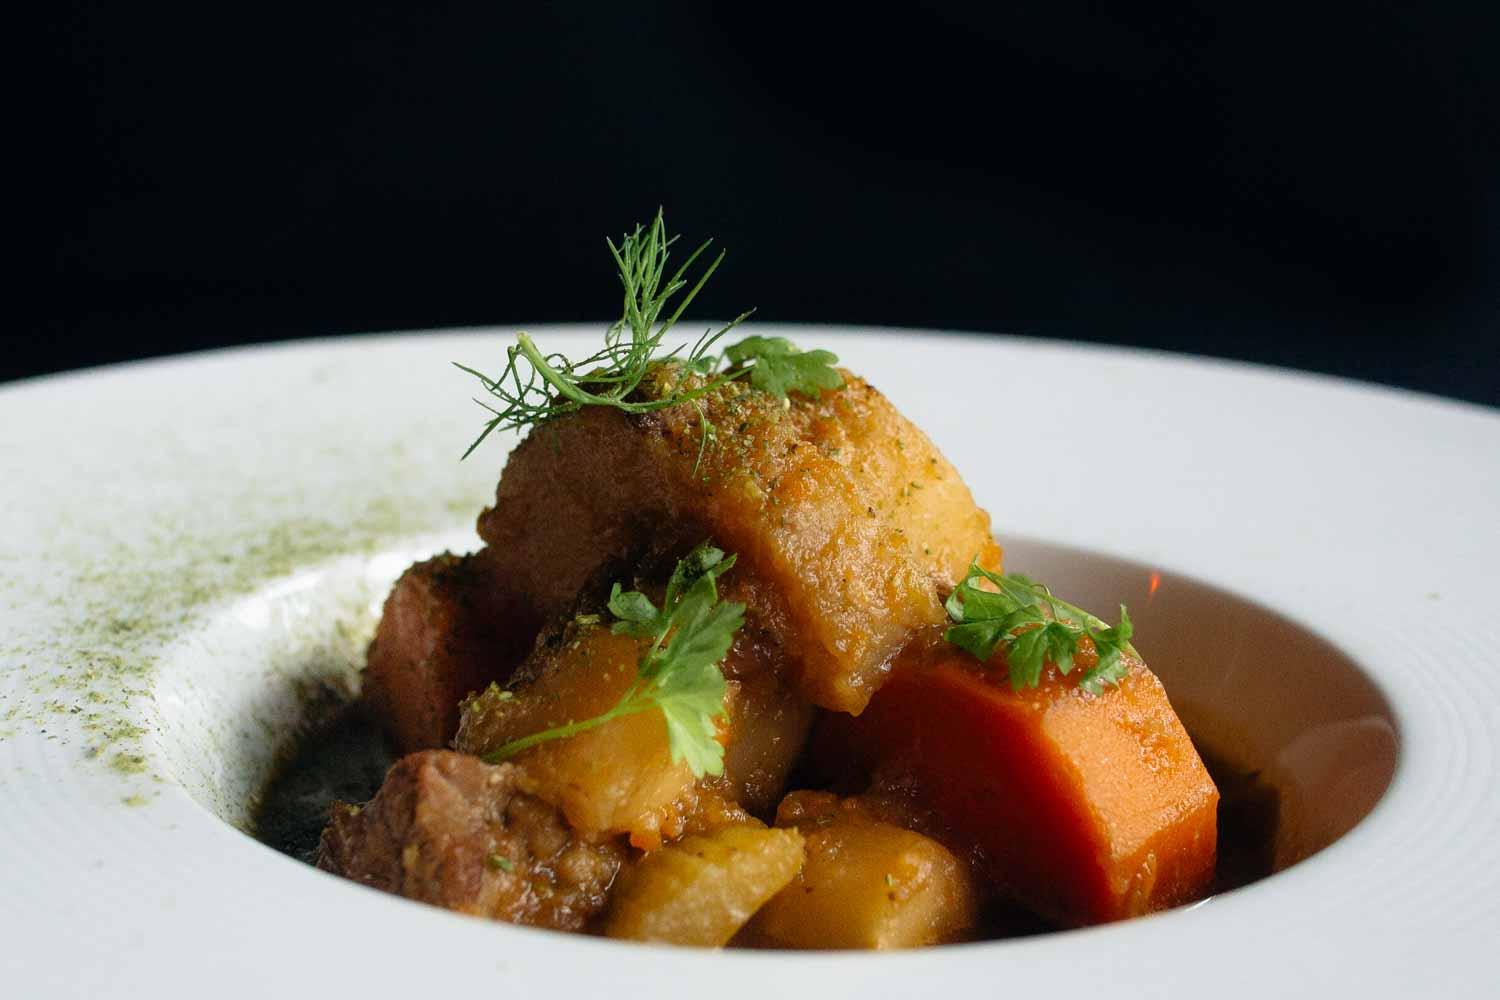 Carne guisada is traditional Panamanian food that is a beef stew.